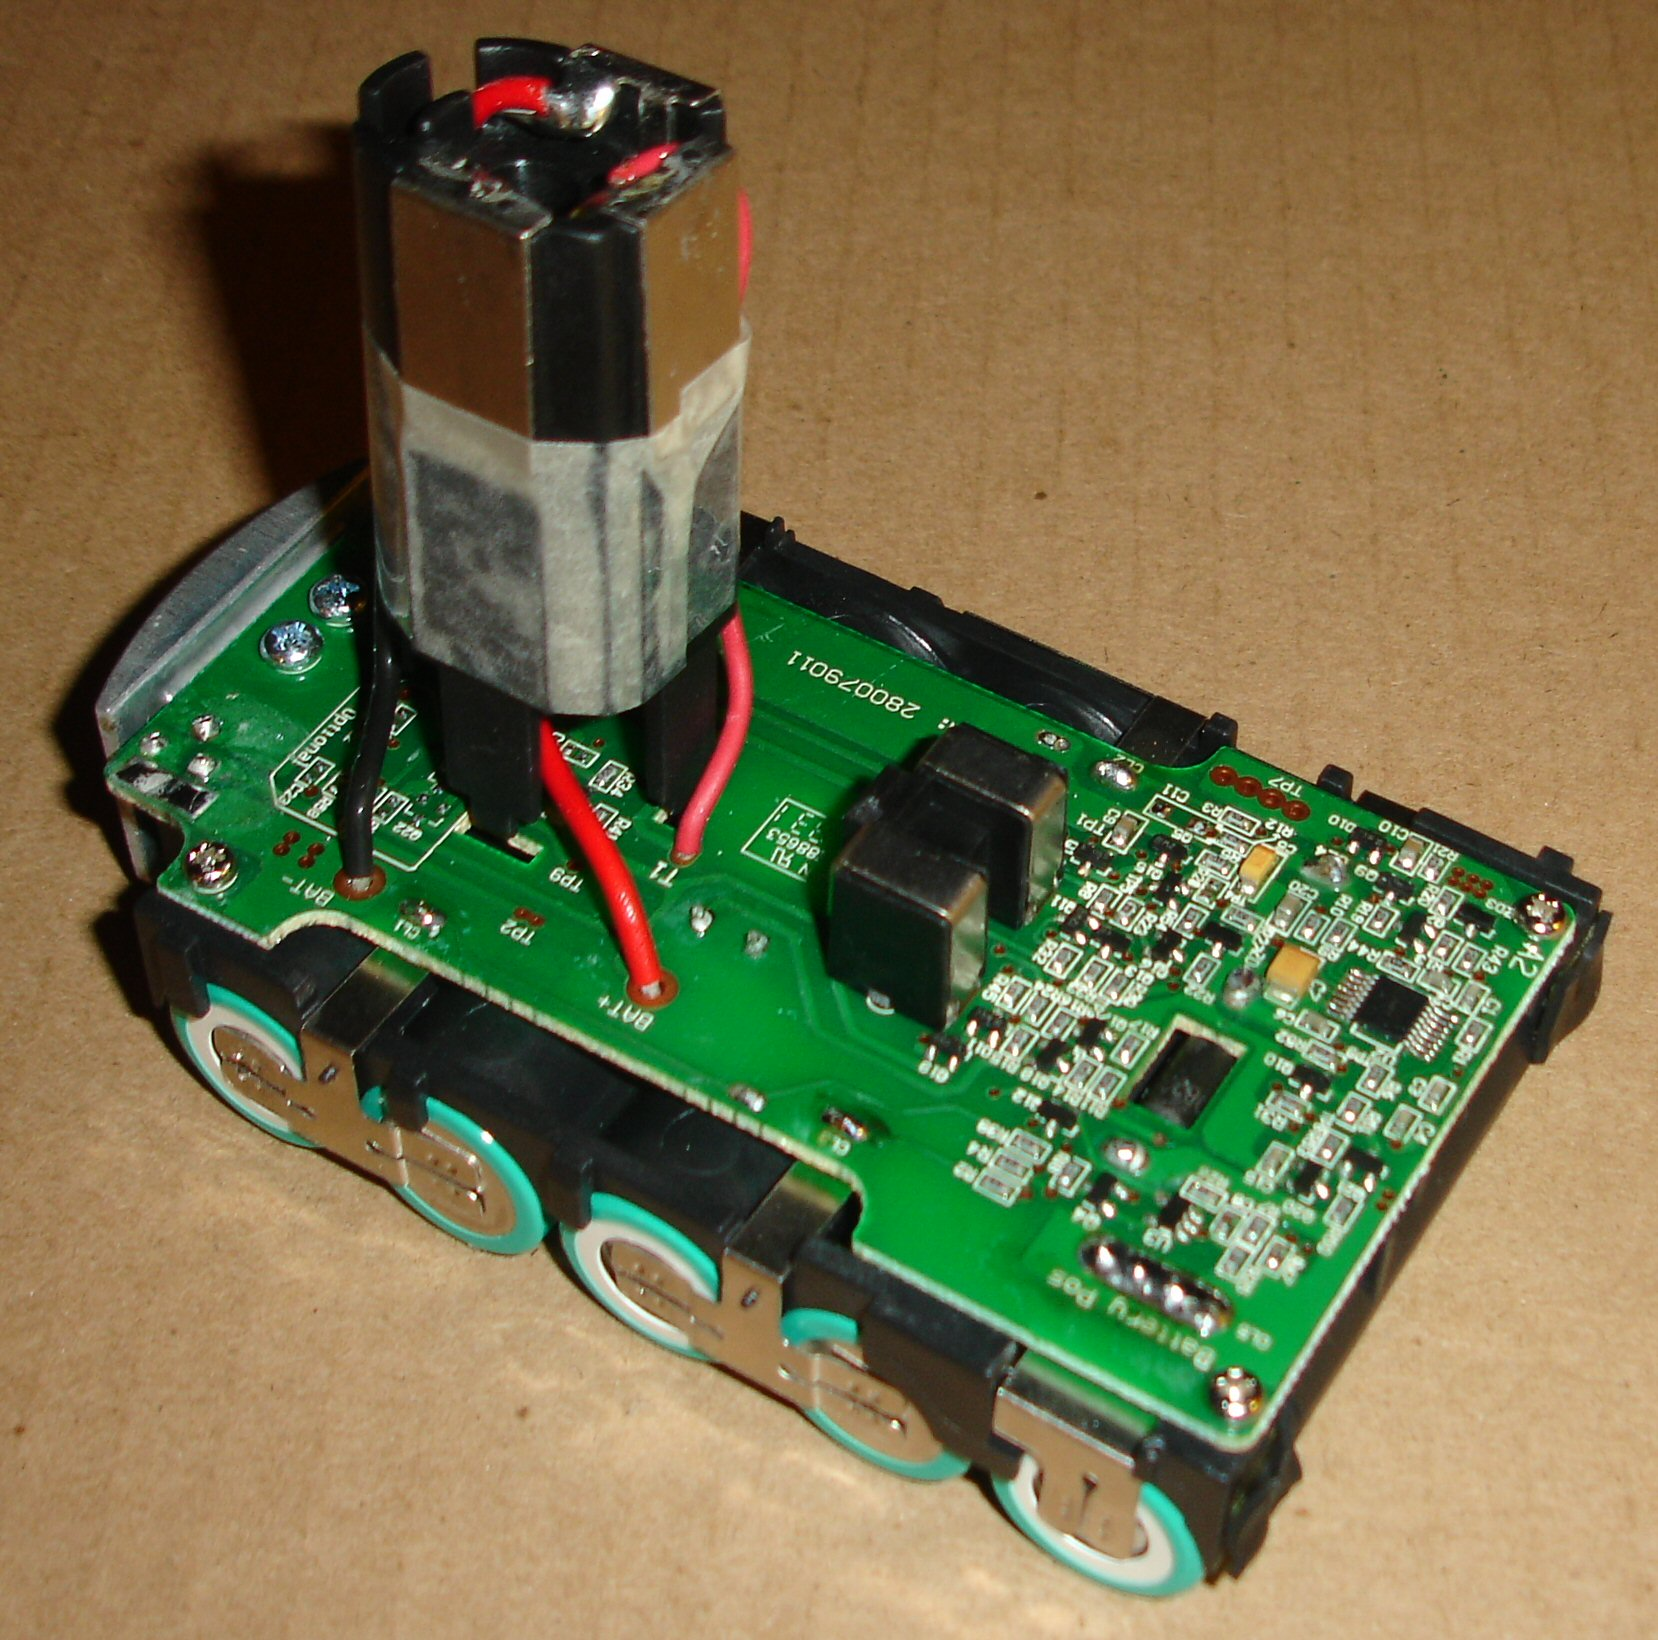 lithium battery inside